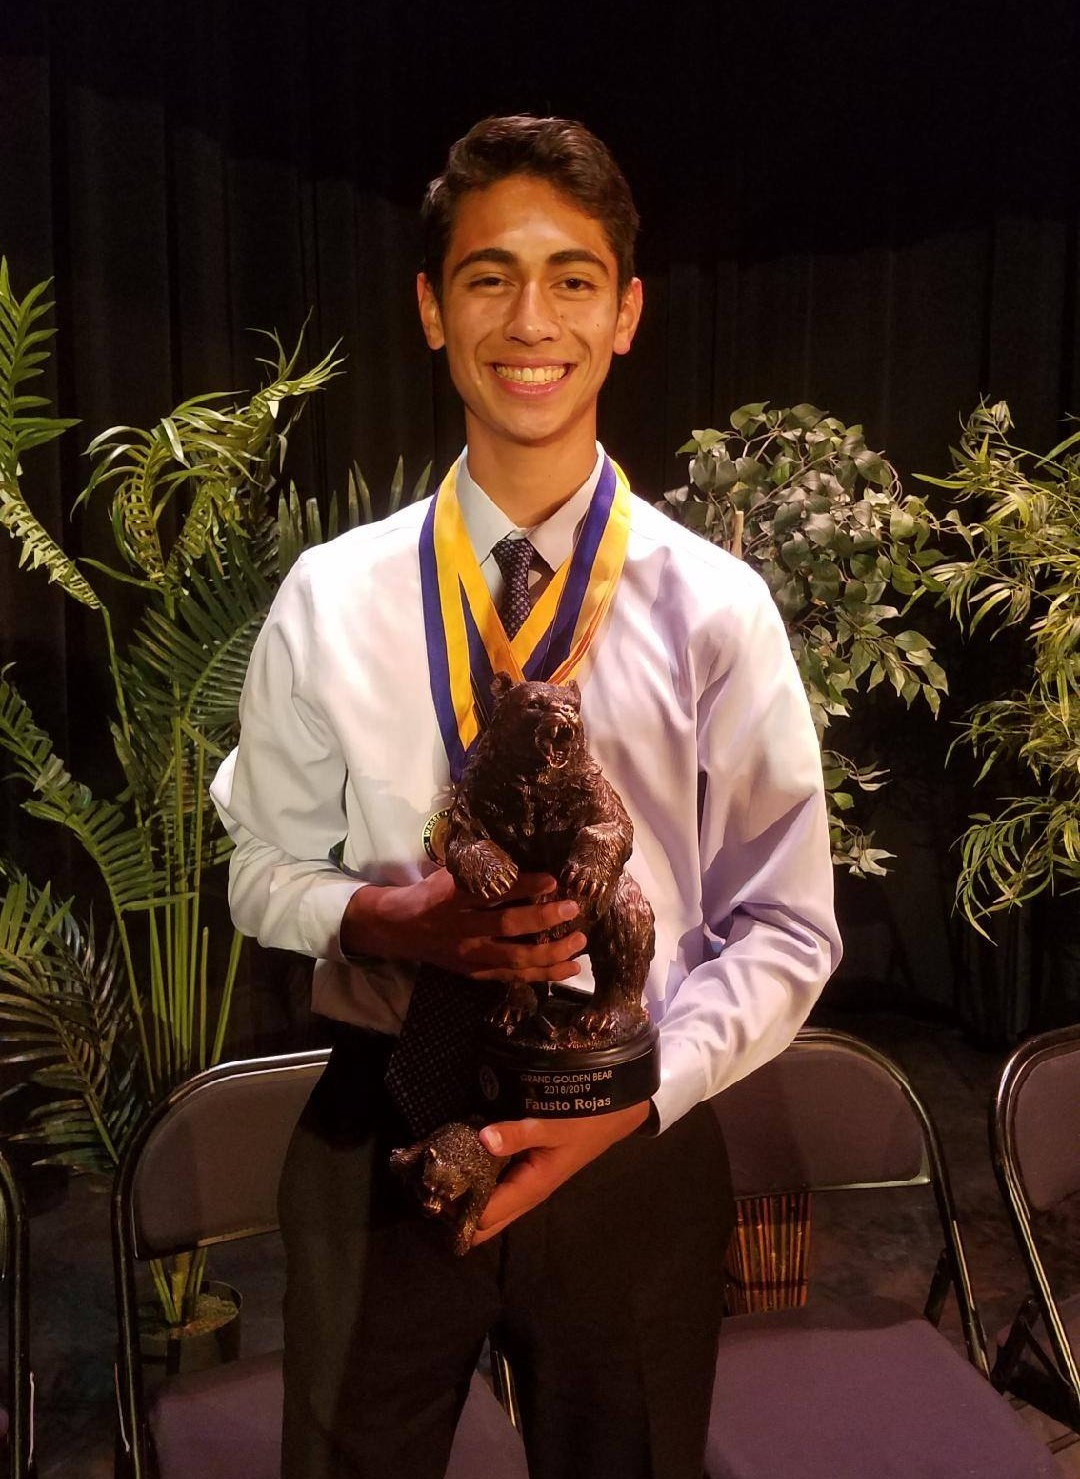 Warren High School senior Fausto Miguel Rojas receiving the Grand Gold Bear Award at Warren's Golden Bear Awards Ceremony.